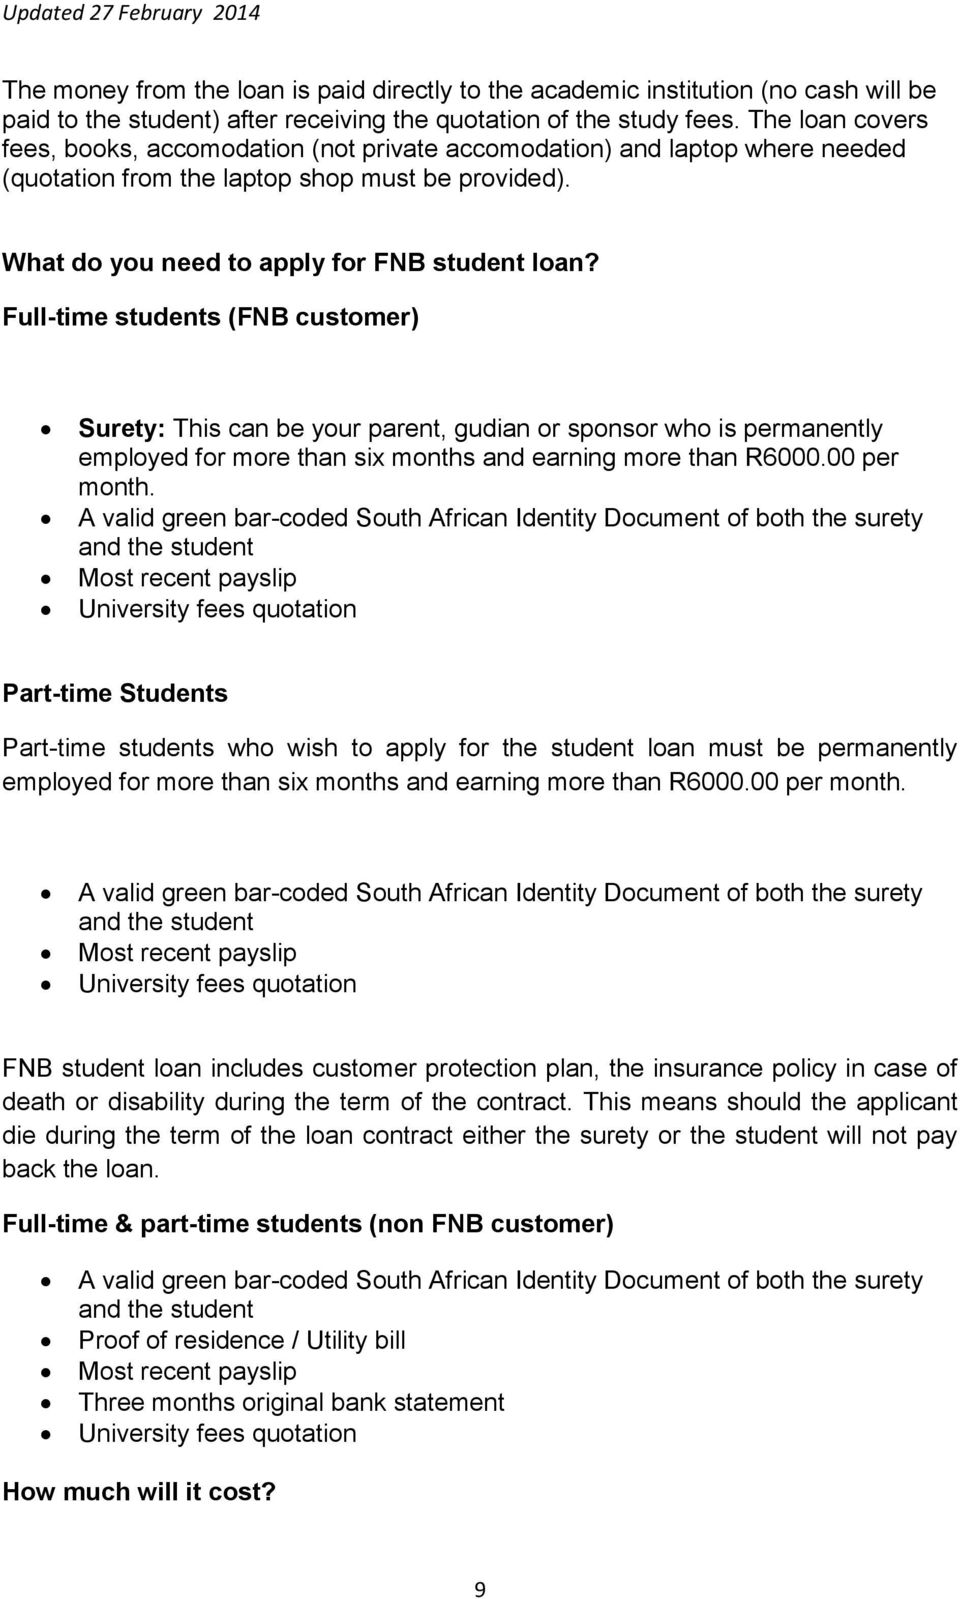 Full-time students (FNB customer) Surety: This can be your parent, gudian or sponsor who is permanently employed for more than six months and earning more than R6000.00 per month.